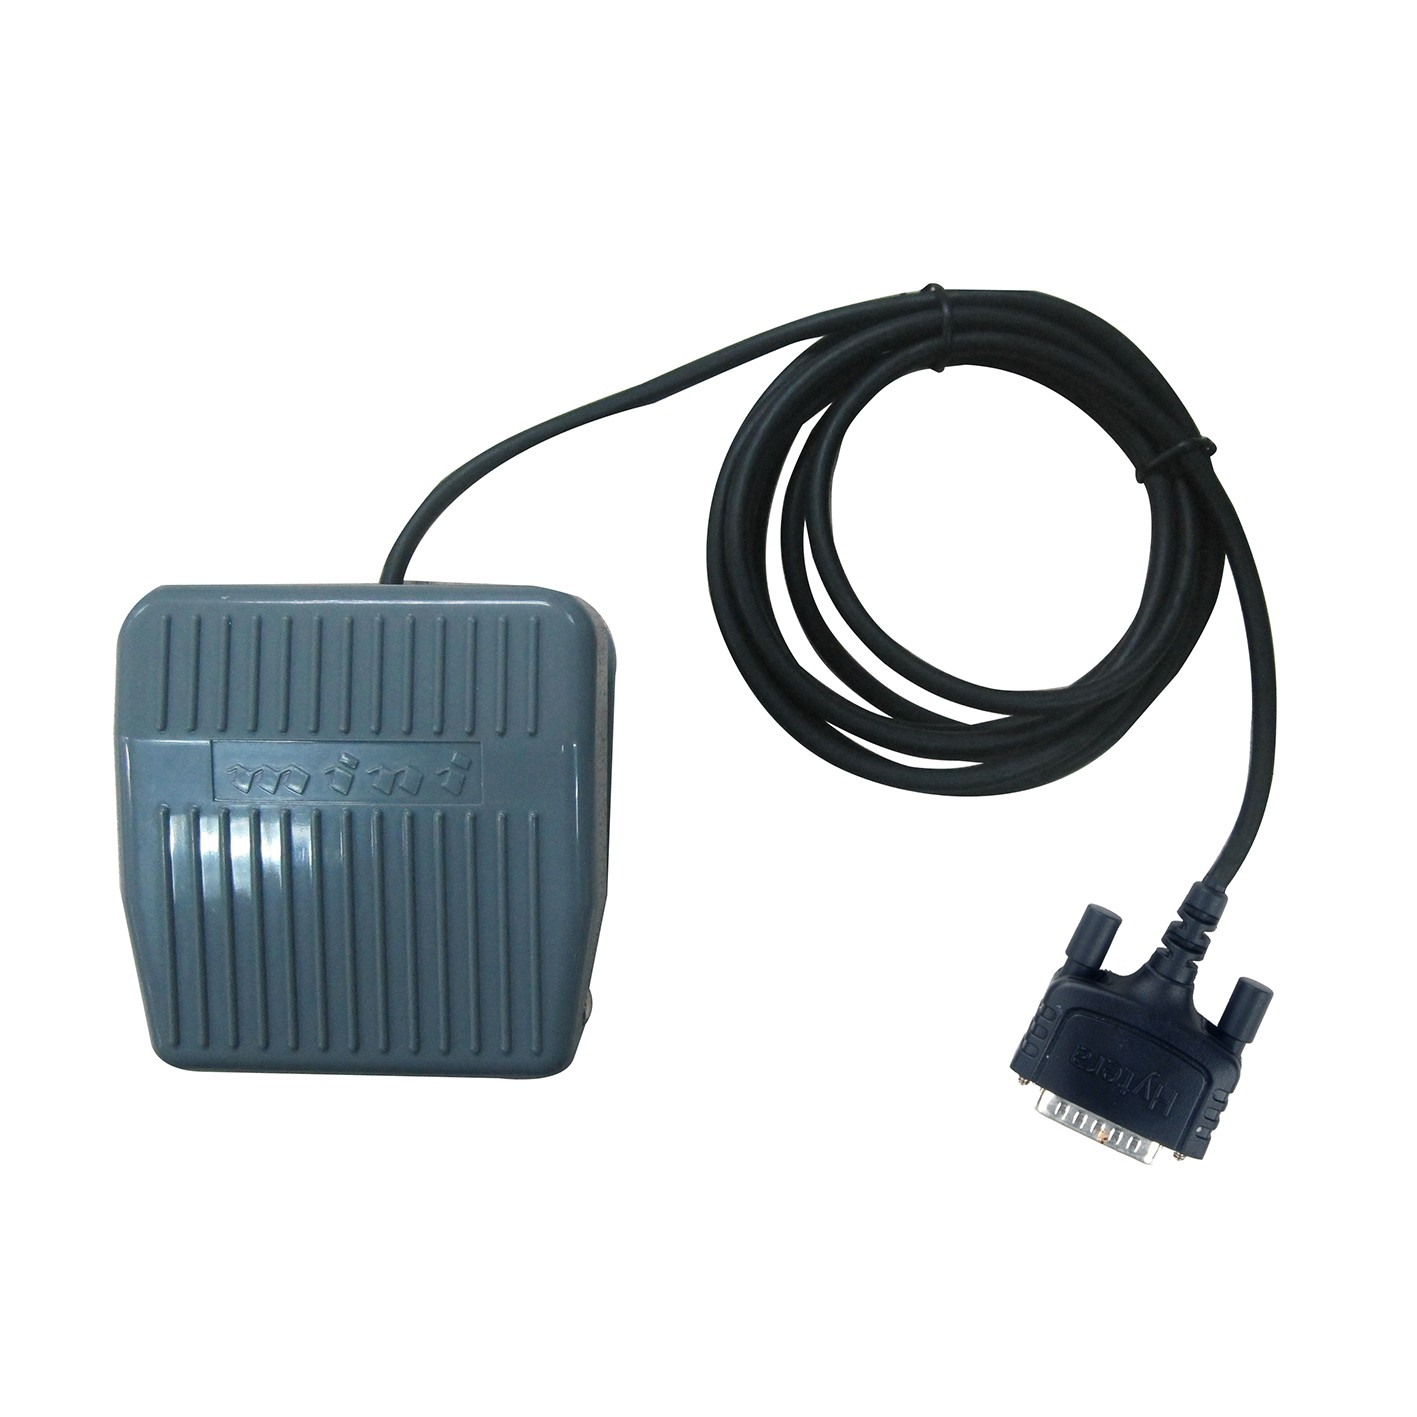 Hytera - Foot Switch (External PTT)